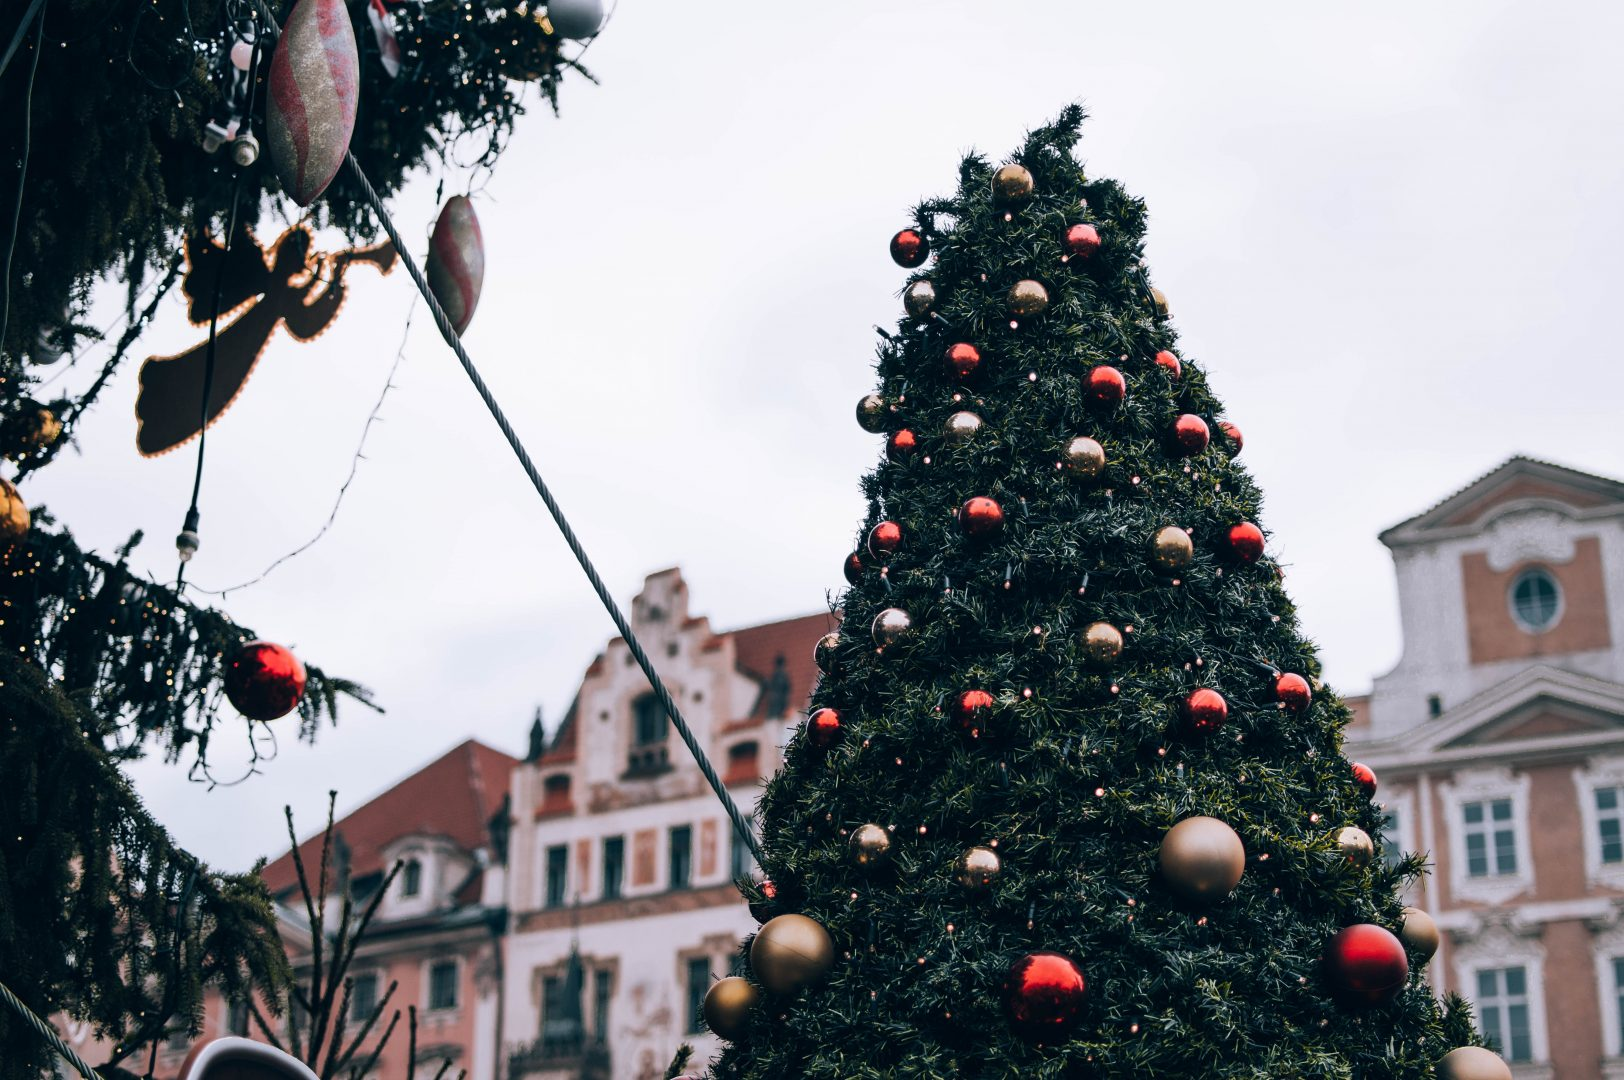 brown and yellow baubles on tree during daytime